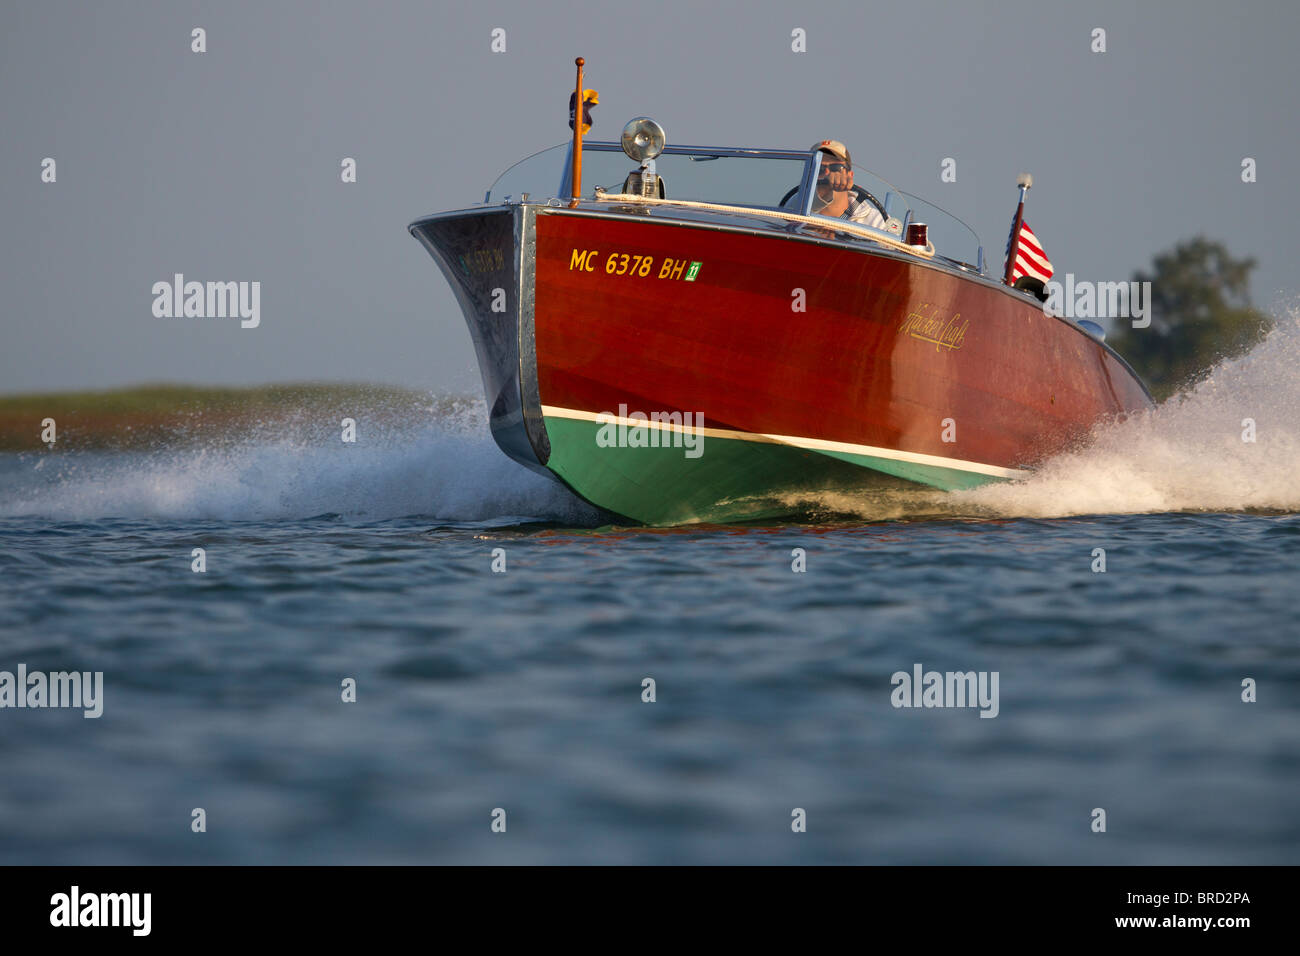 An approaching antique, wooden Hackercraft speedboat. - Stock Image